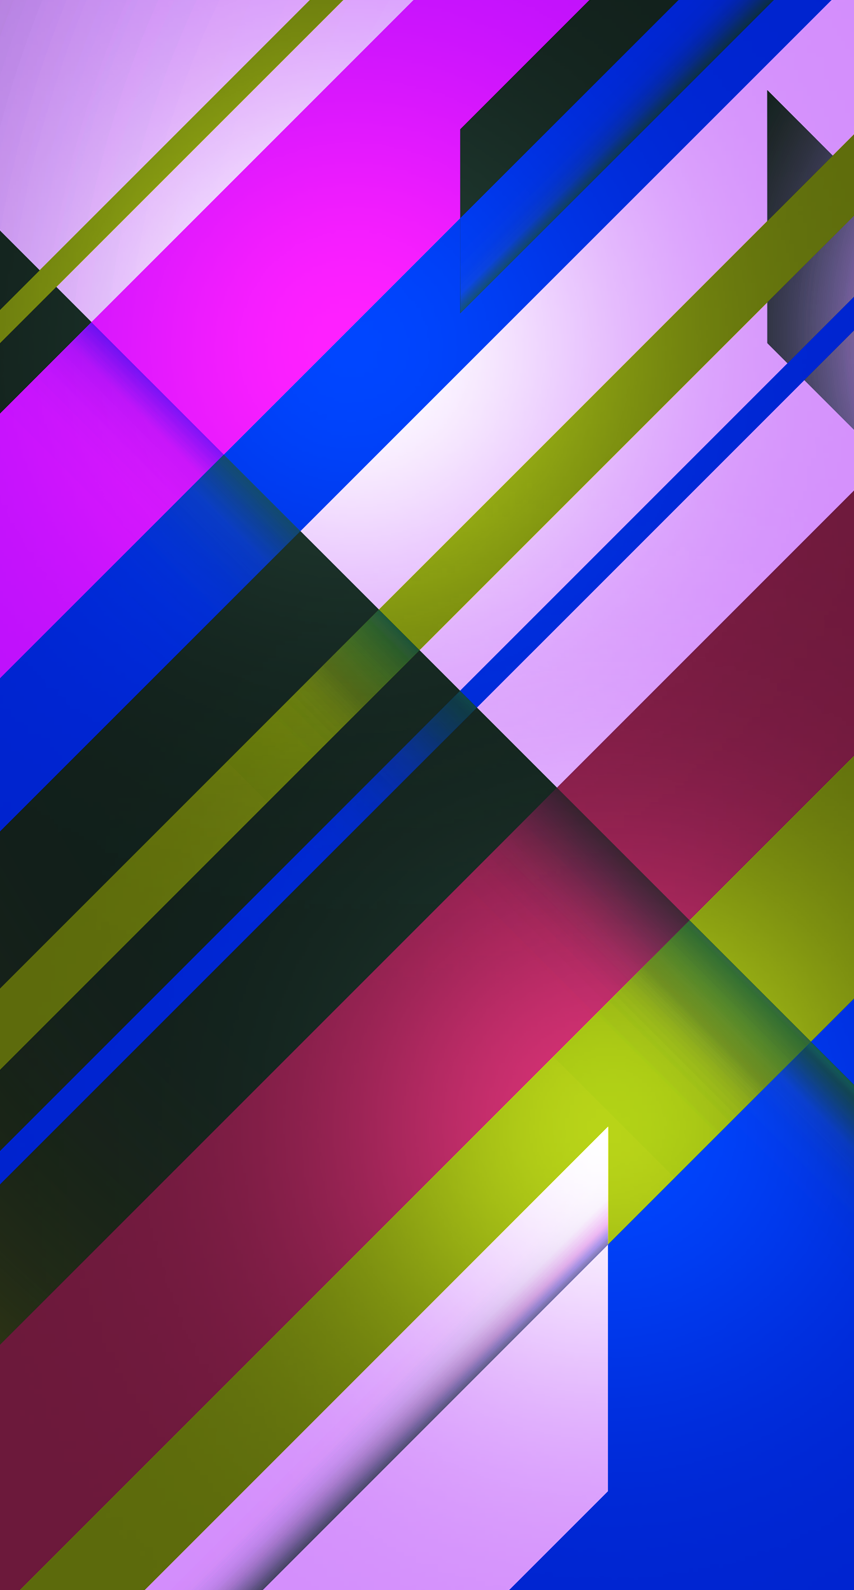 graphic, design, background, insubstantial, wallpaper, illustration, color, creativity, motley, spectrum